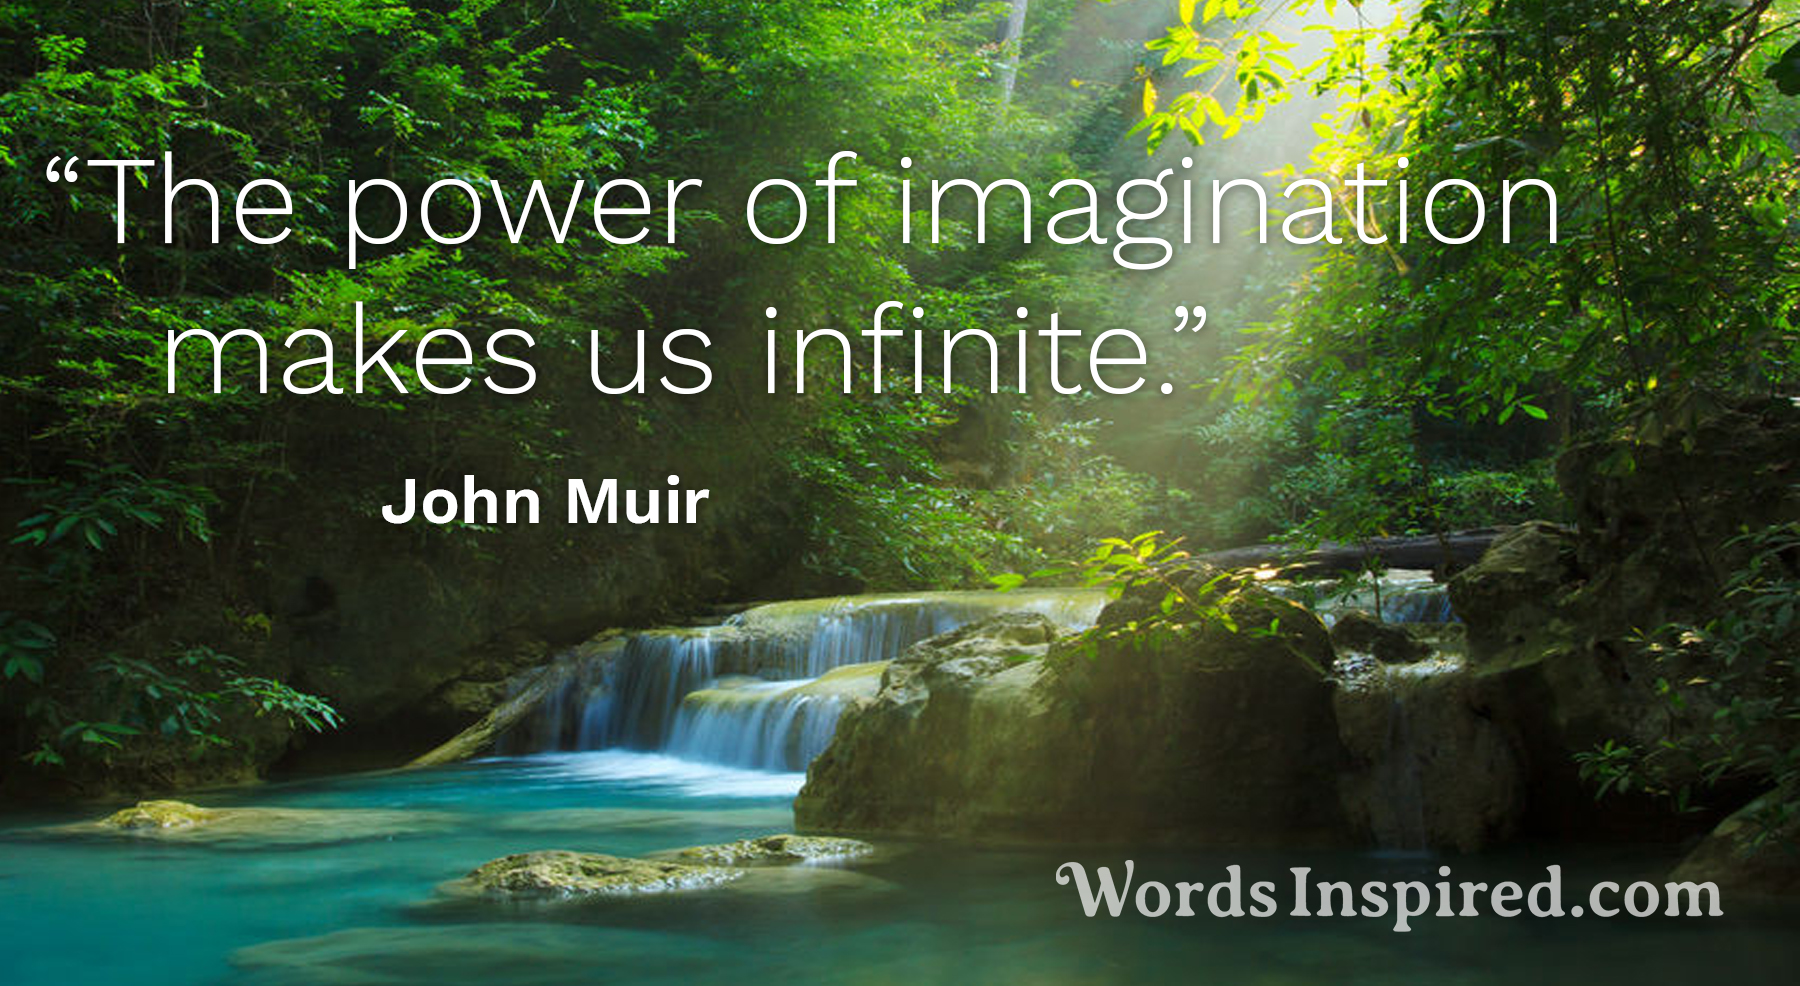 John Muir Quote From Wordsinspired The Power Of Imagination